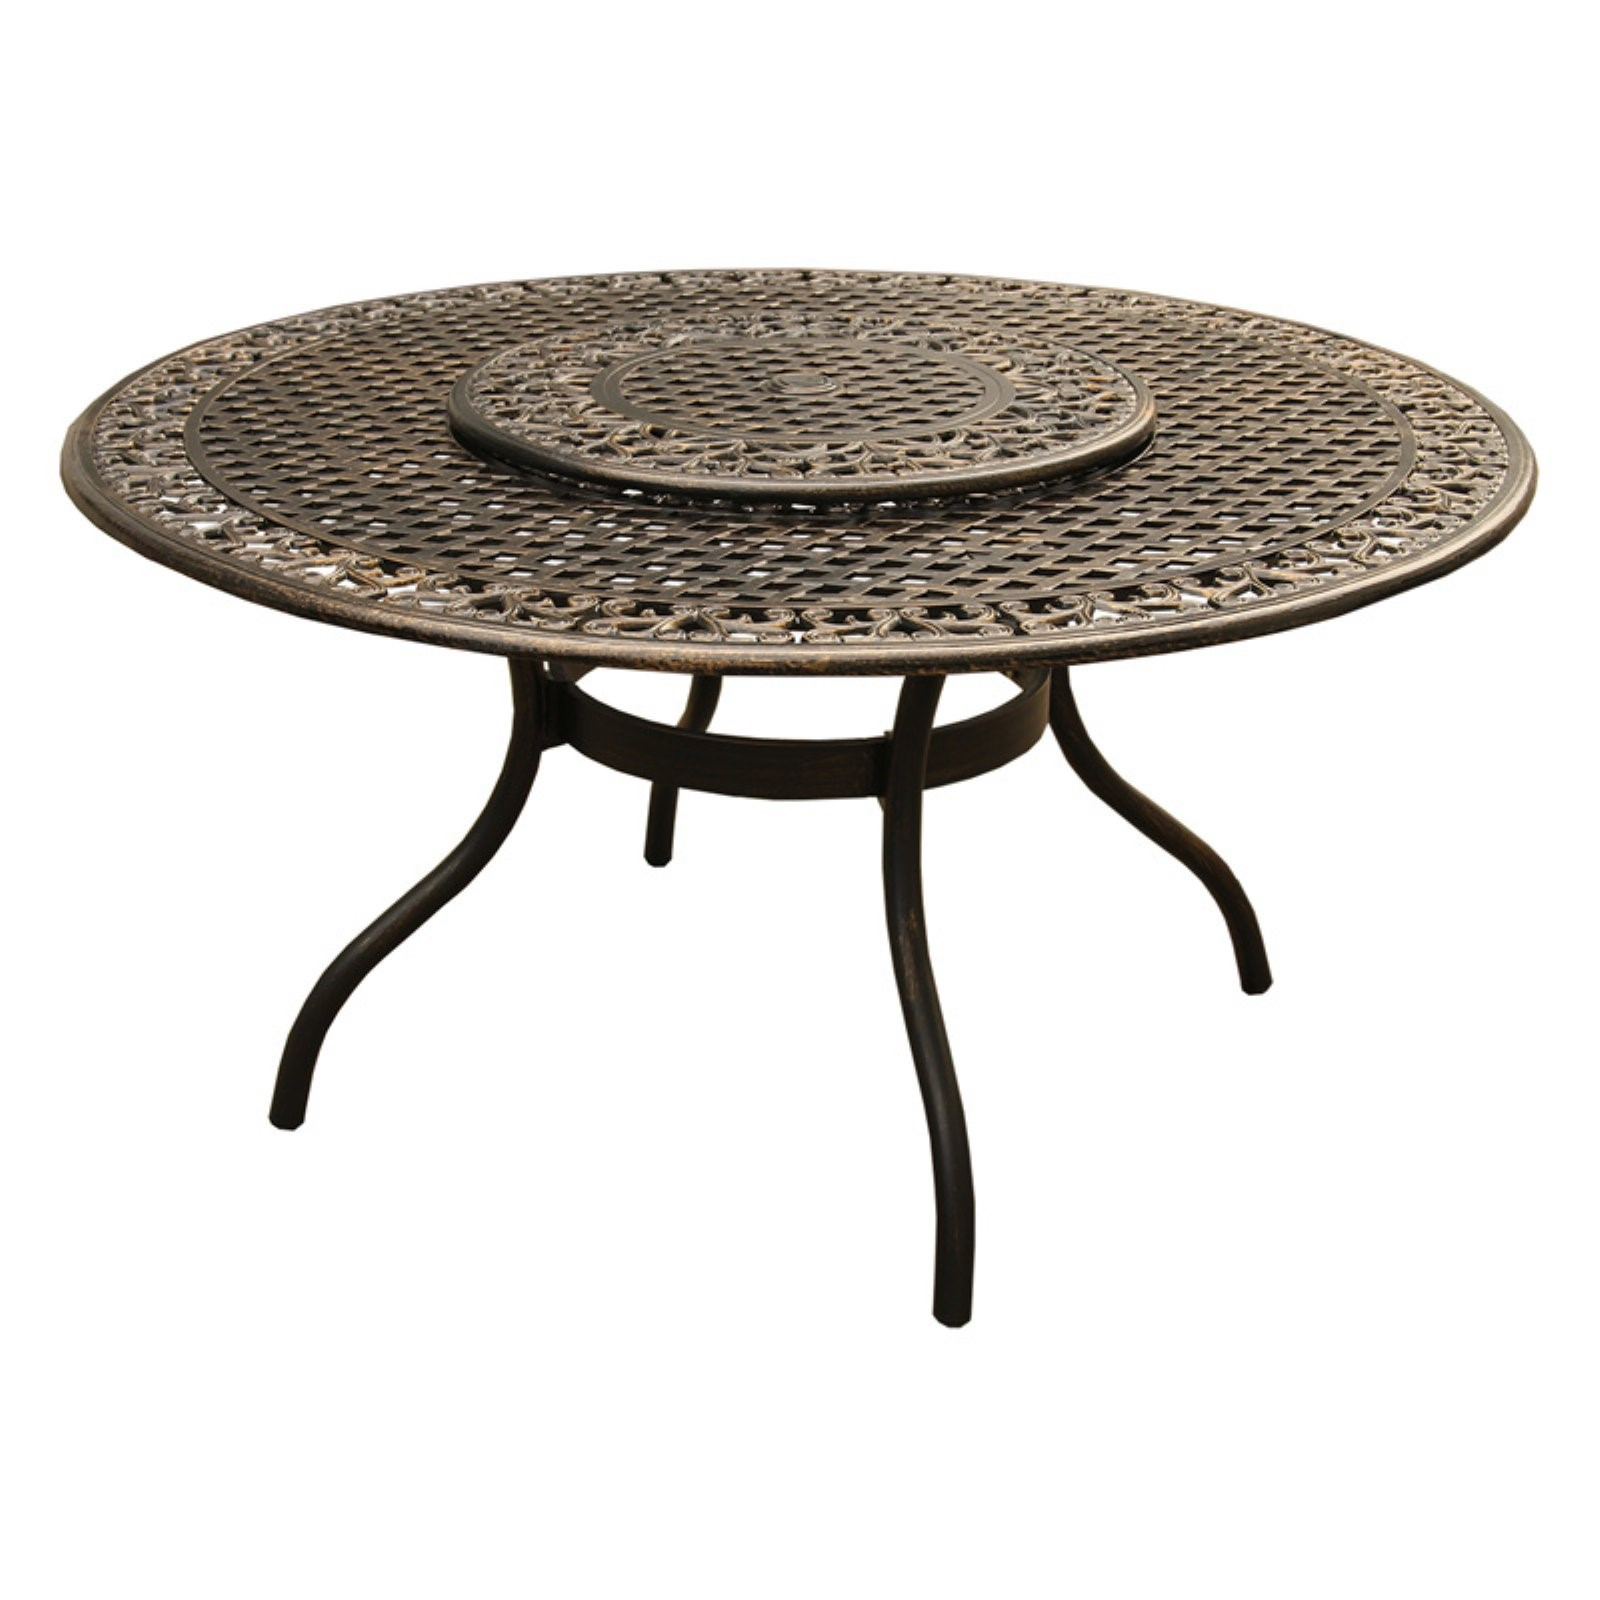 Oakland Living Ornate Mesh Lattice Aluminum Round Patio Dining Table with Lazy Susan